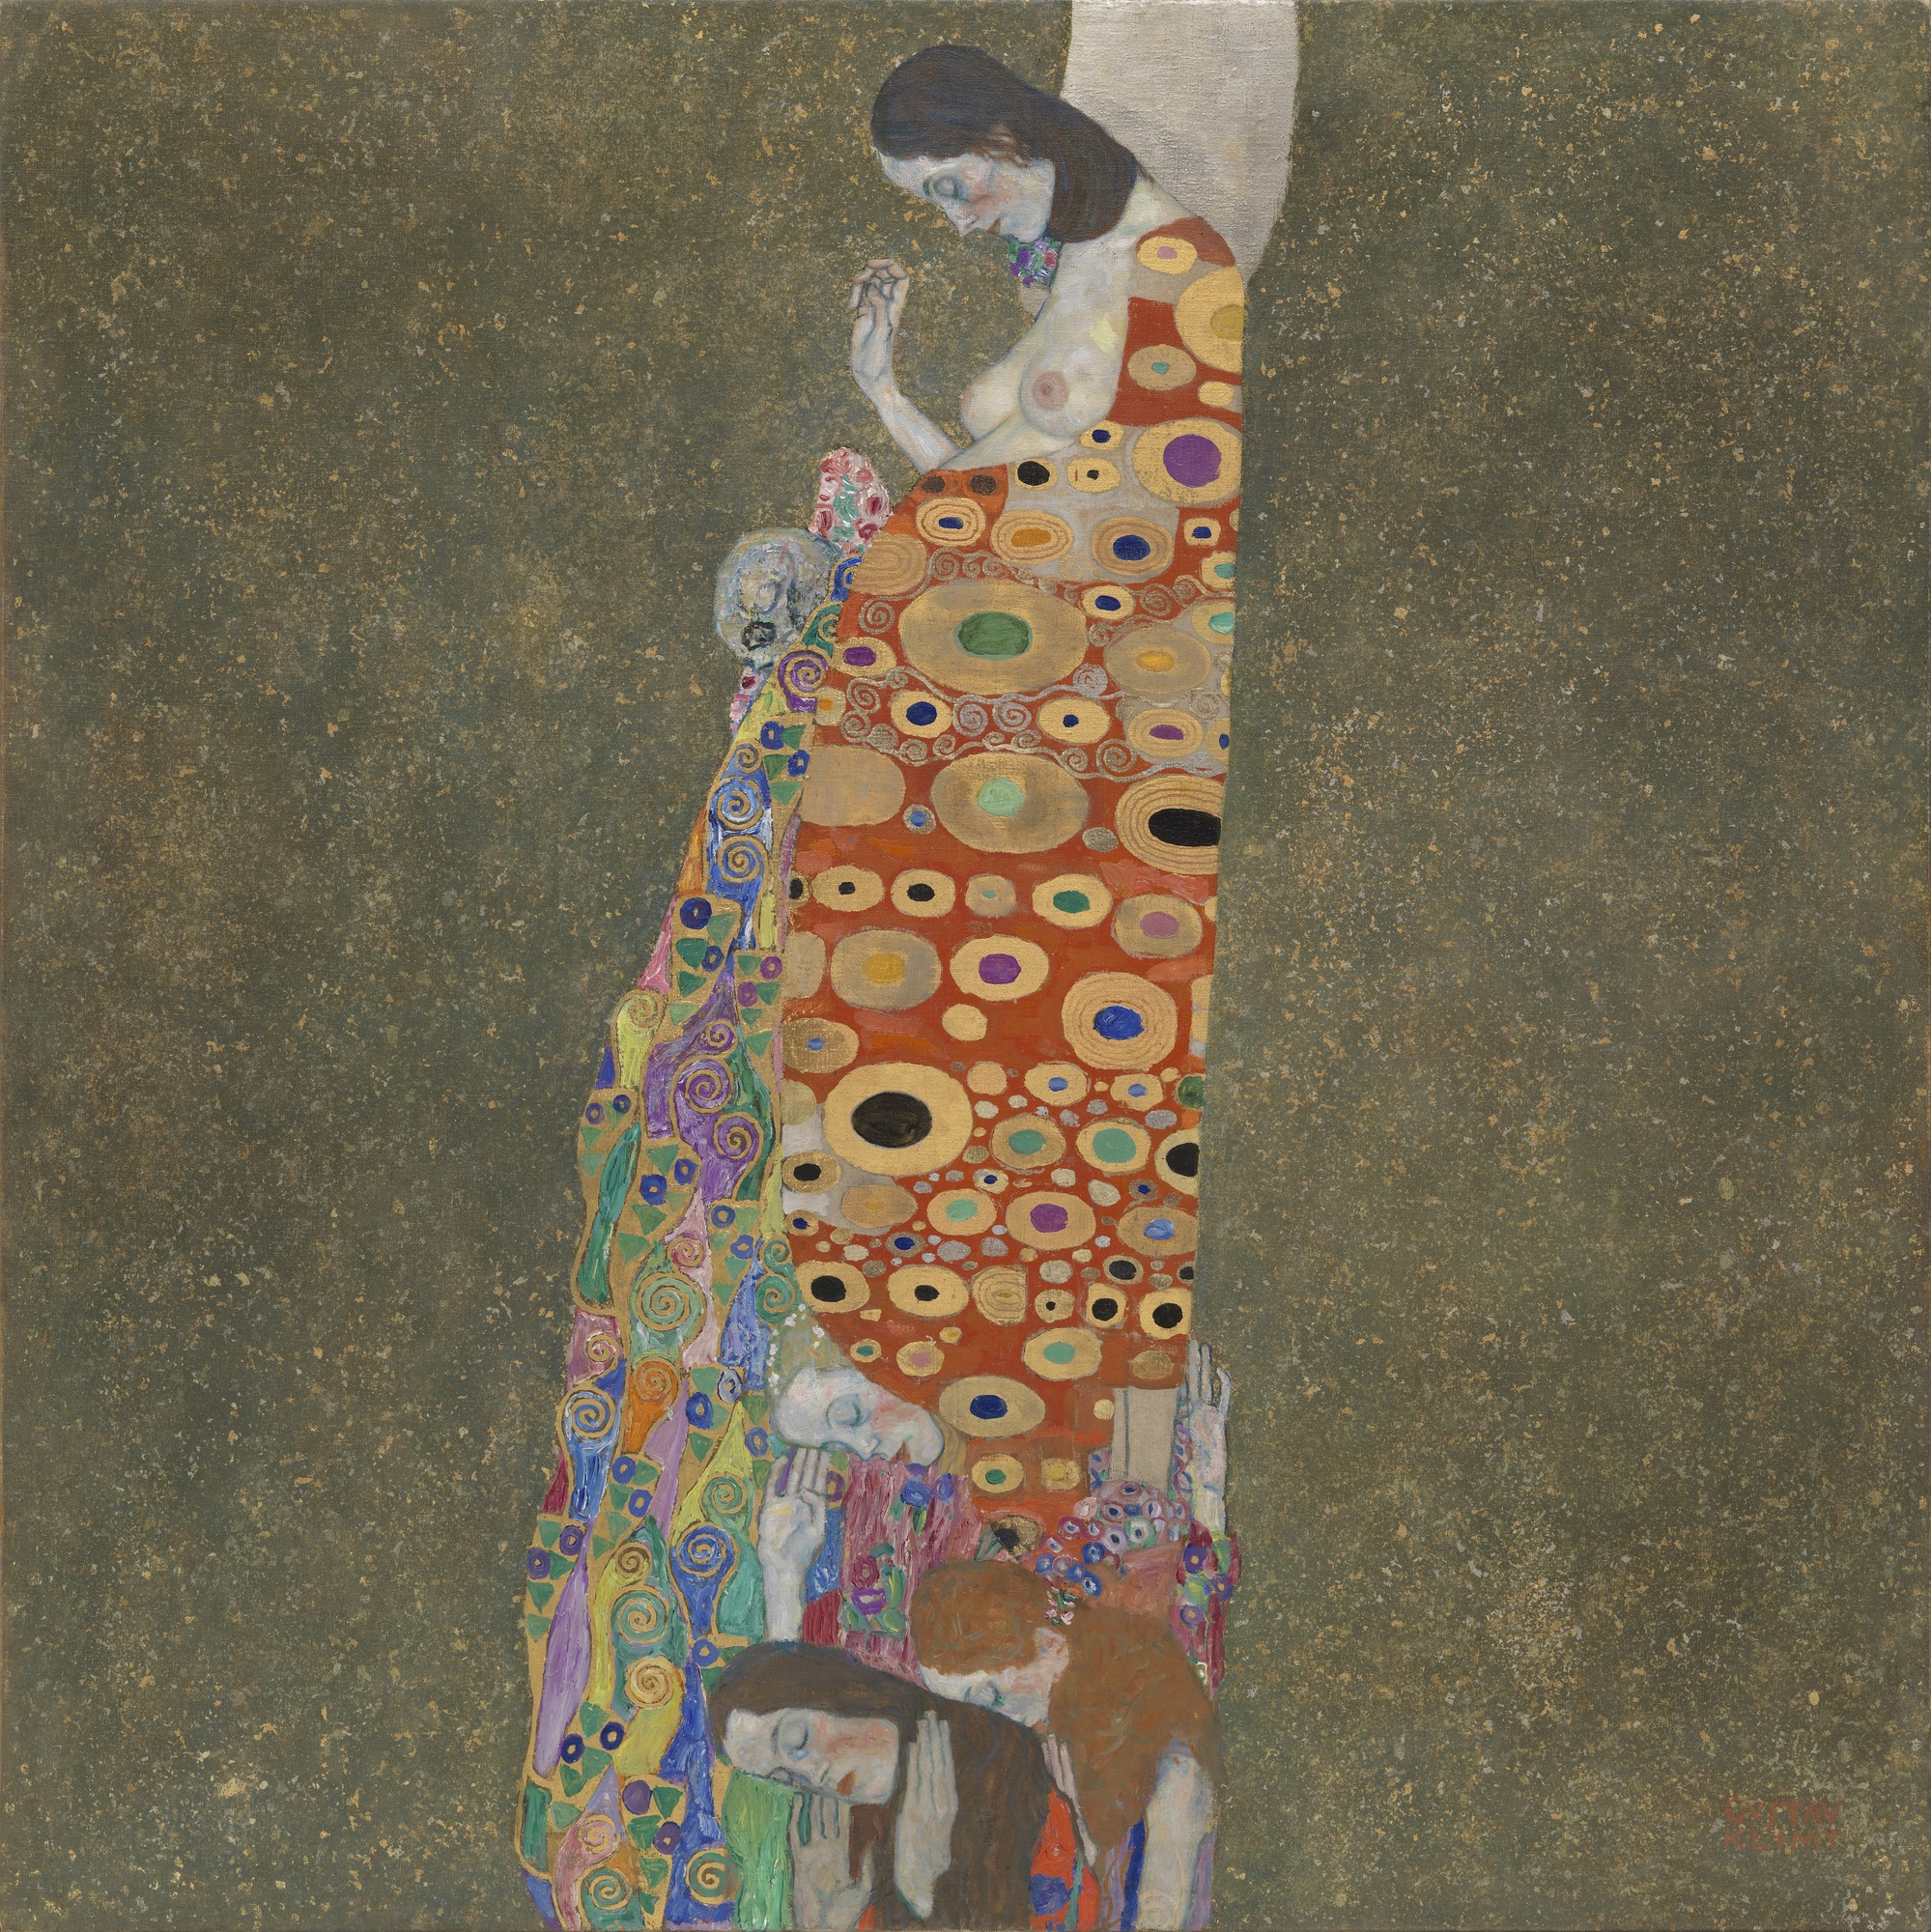 Gustav Klimt | Hope | 1907-8 | sourced via moma.org